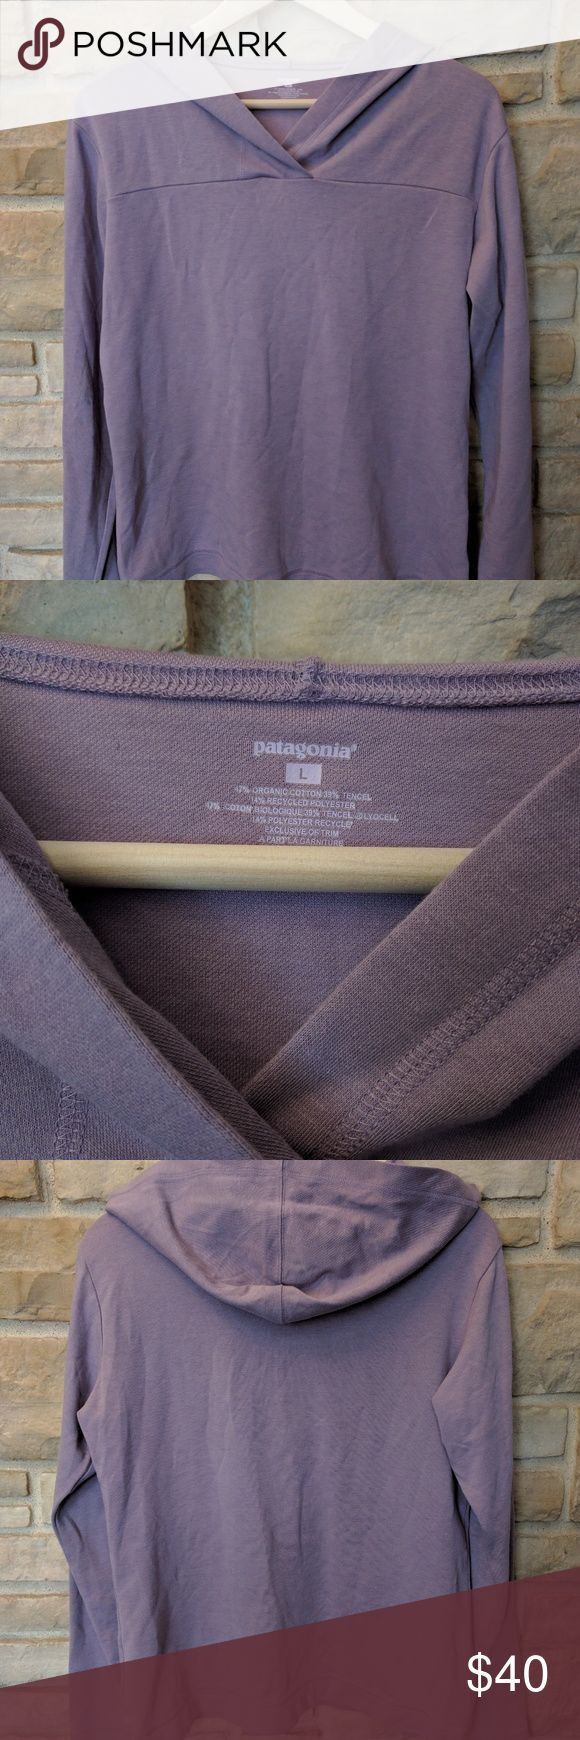 Patagonia hoodie Great midweight pullover hoodie.  No annoying zippers or strings.  So soft! Hardly worn.  Pretty lavender color - a little warmer toned than camera picked up. Patagonia Tops Sweatshirts & Hoodies